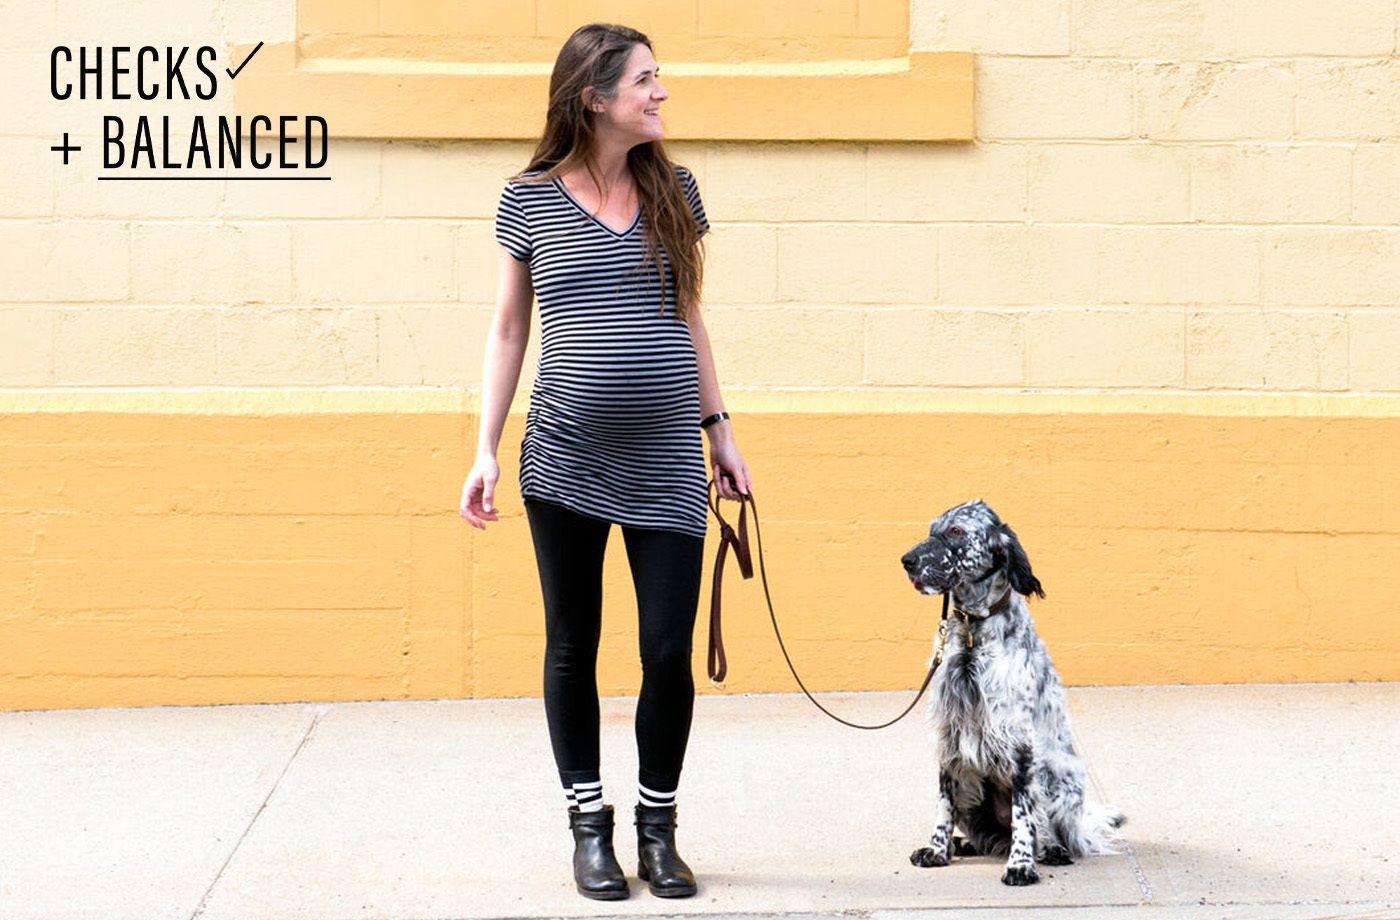 Thumbnail for Checks+Balanced: How pregnancy changed budgeting for a 25-year-old in Seattle